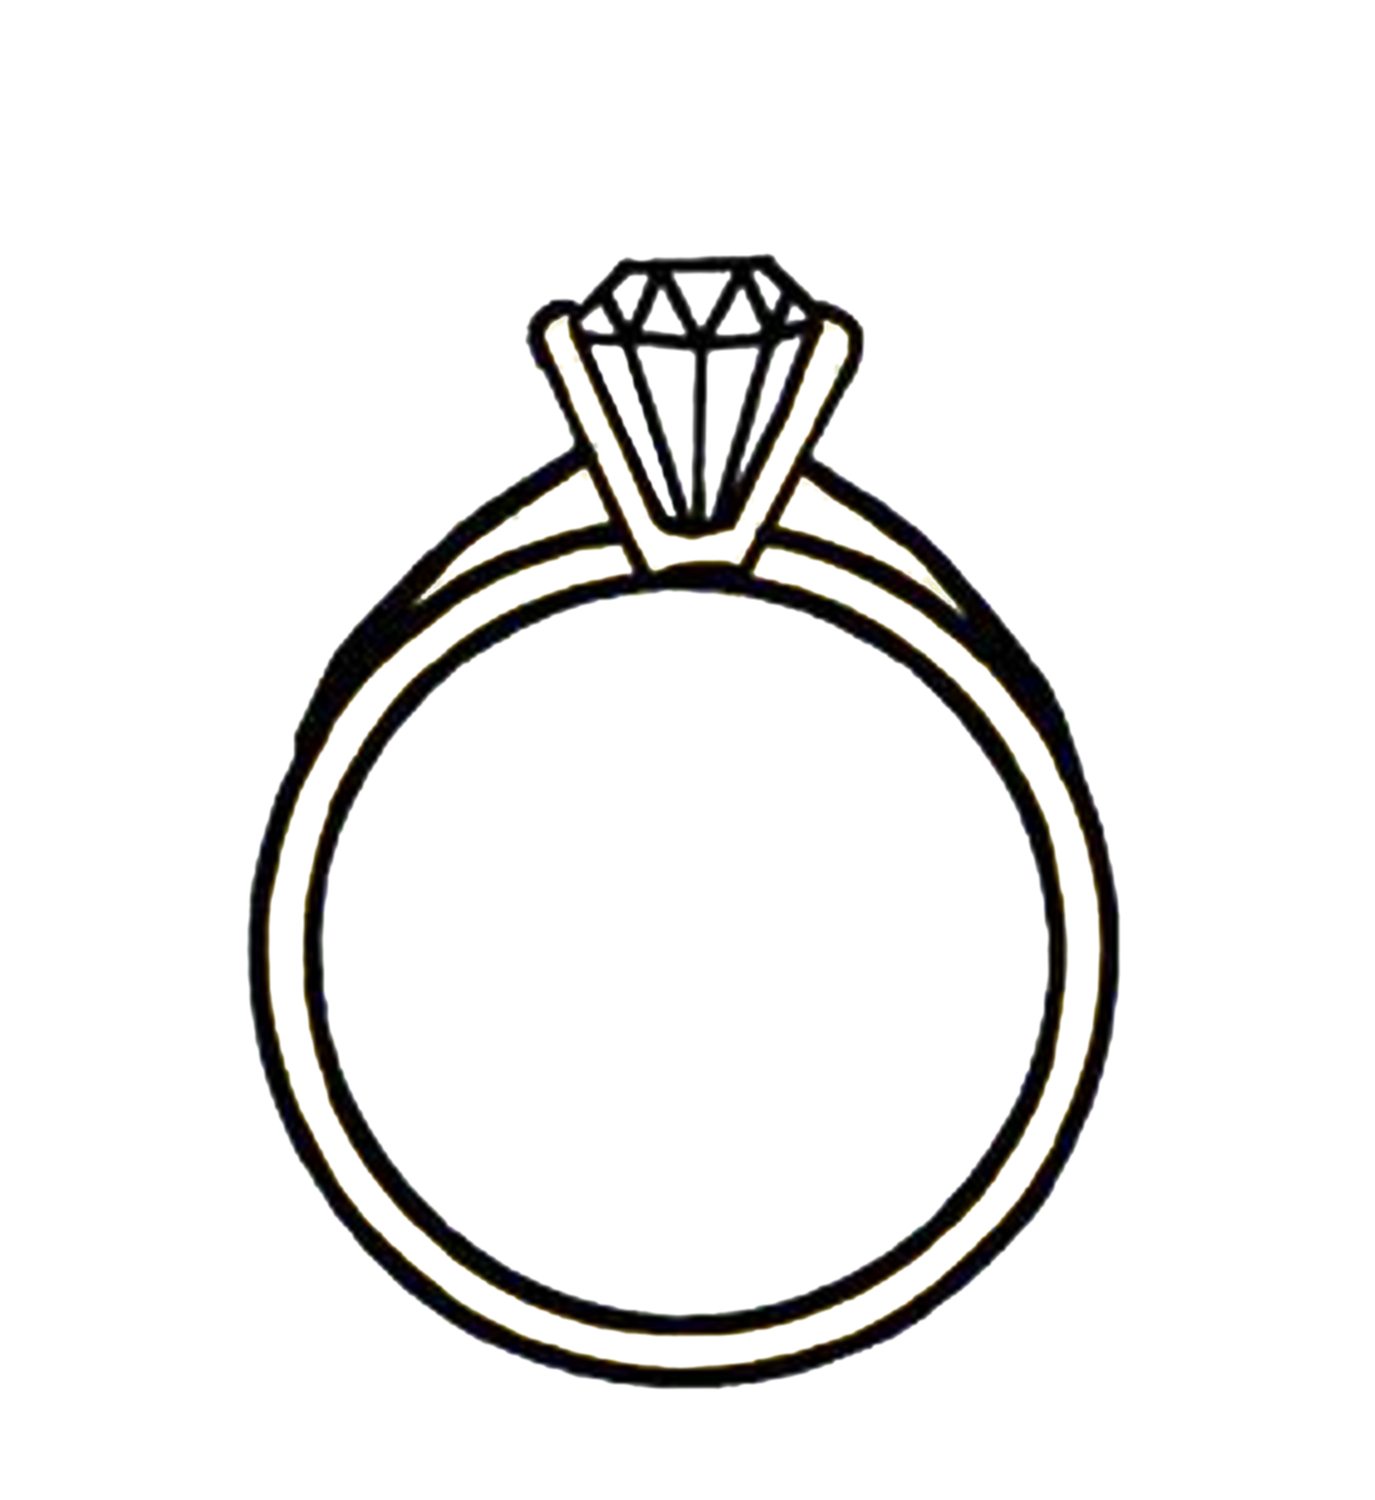 hight resolution of diamond ring clipart clipart library free clipart images